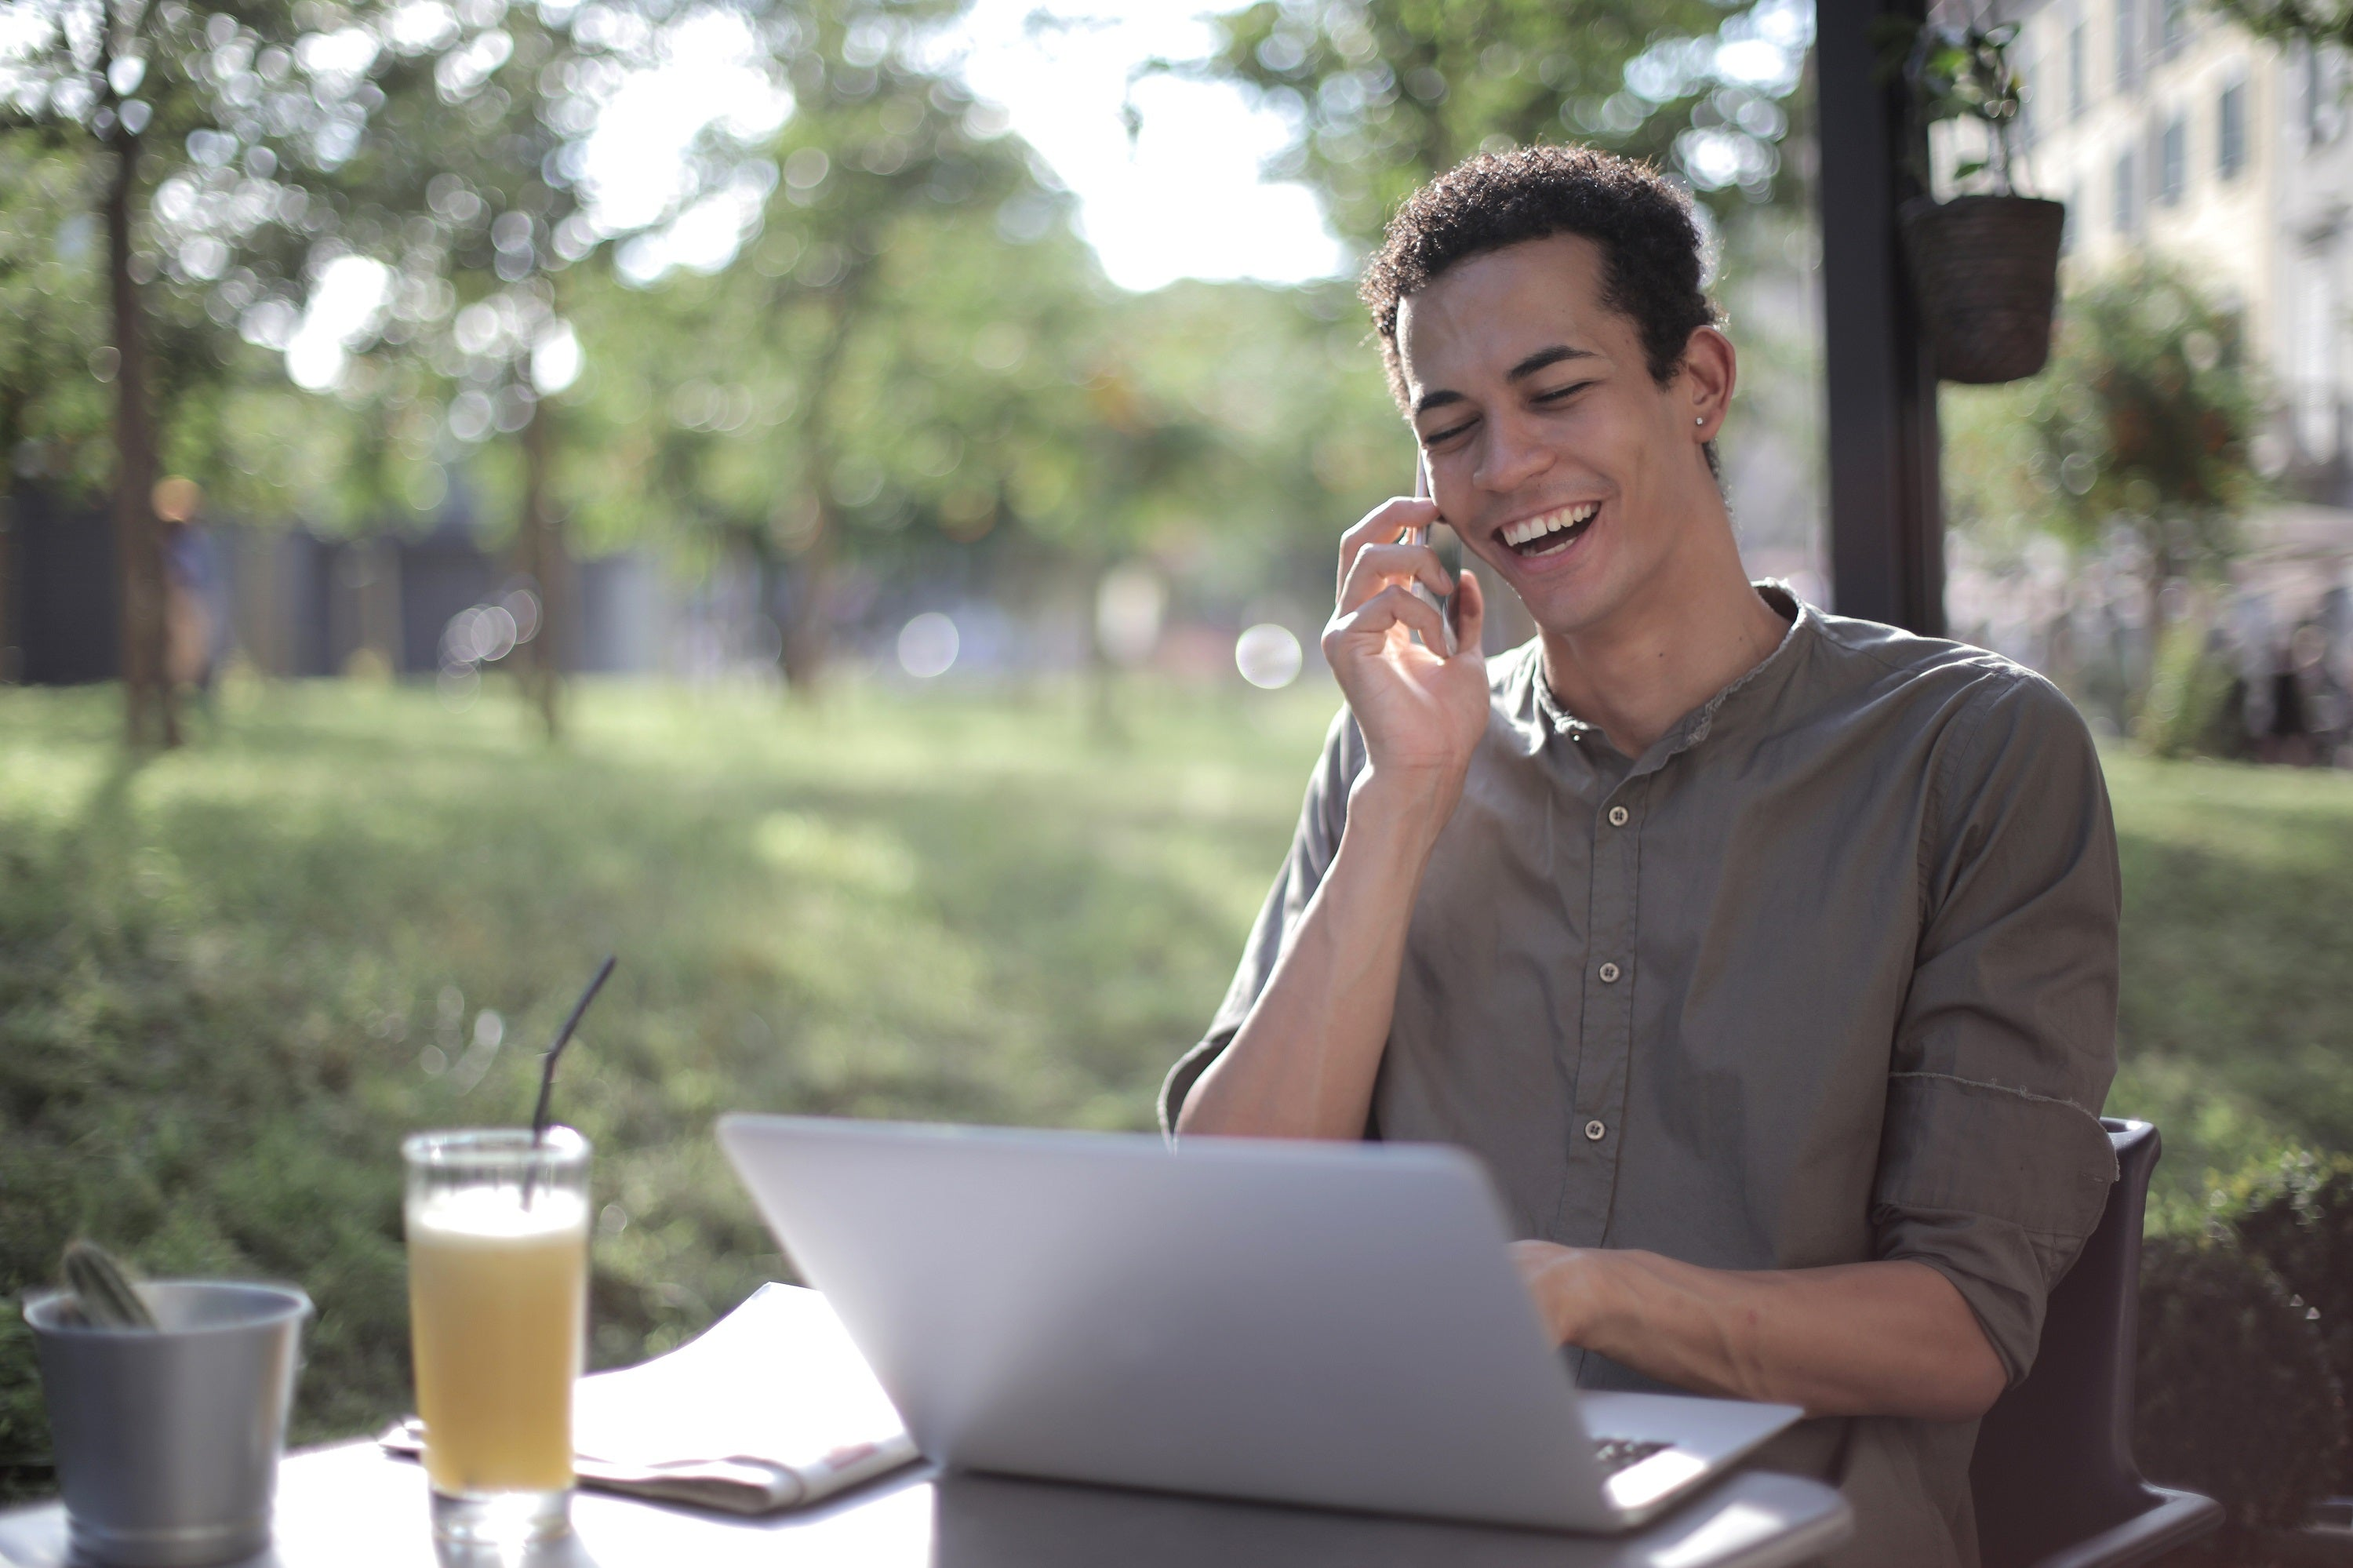 Smiling young professional on the phone in front of laptop.